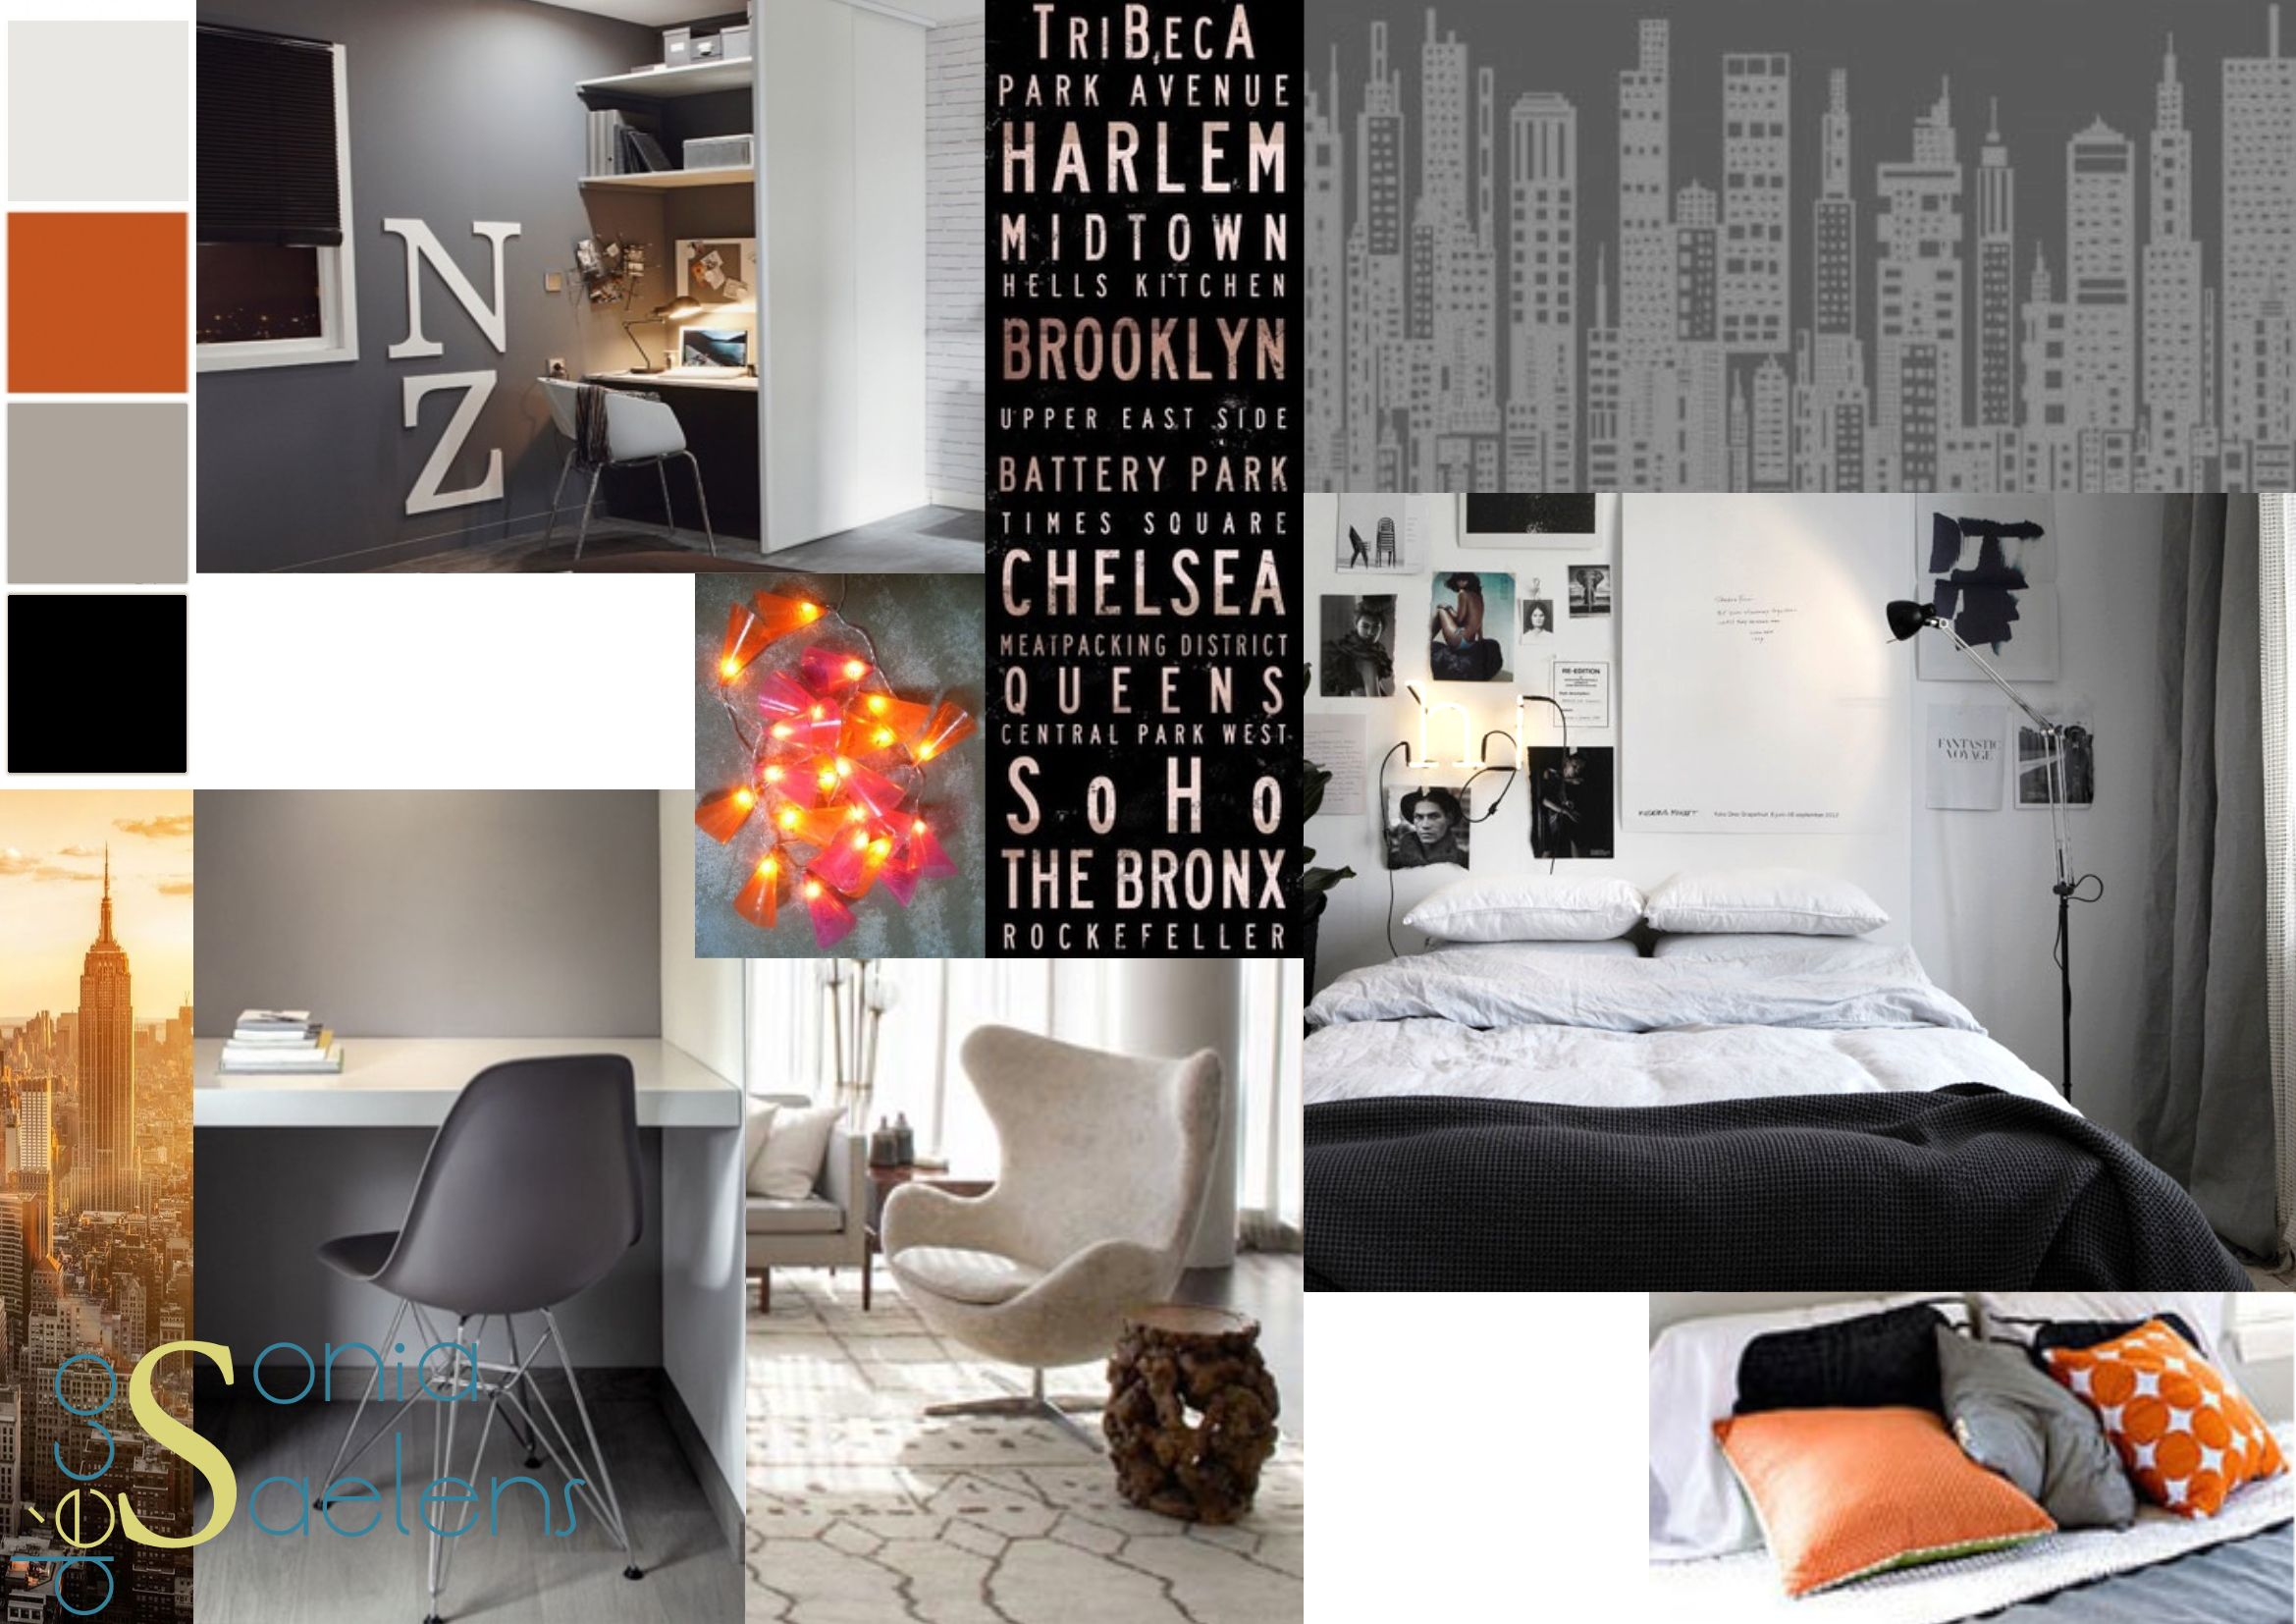 planche tendance pour l 39 am nagement d 39 une chambre d 39 ado dans un style new york tons de noir. Black Bedroom Furniture Sets. Home Design Ideas